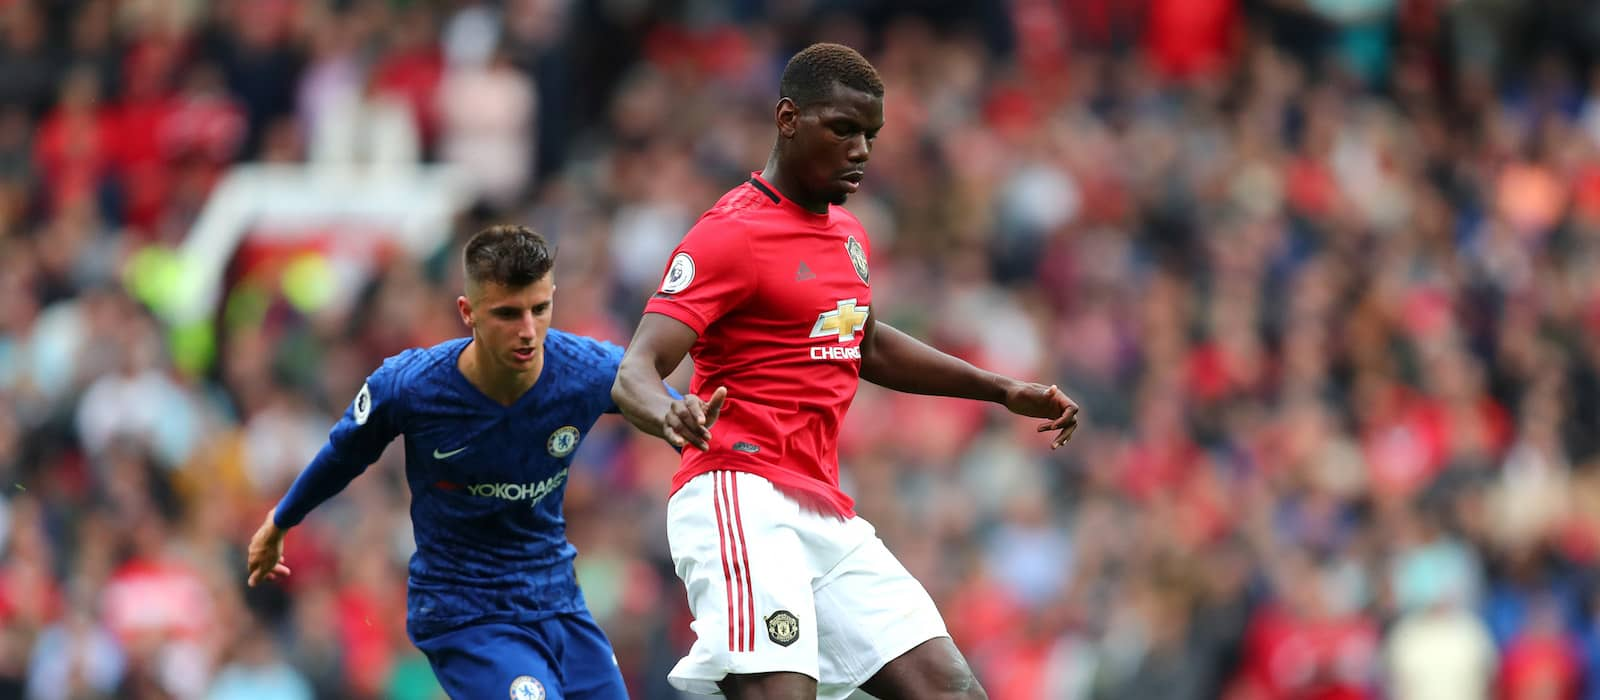 Marcus Rashford, Paul Pogba, Harry Maguire make BBC 'Team of the Week' after Chelsea demolition